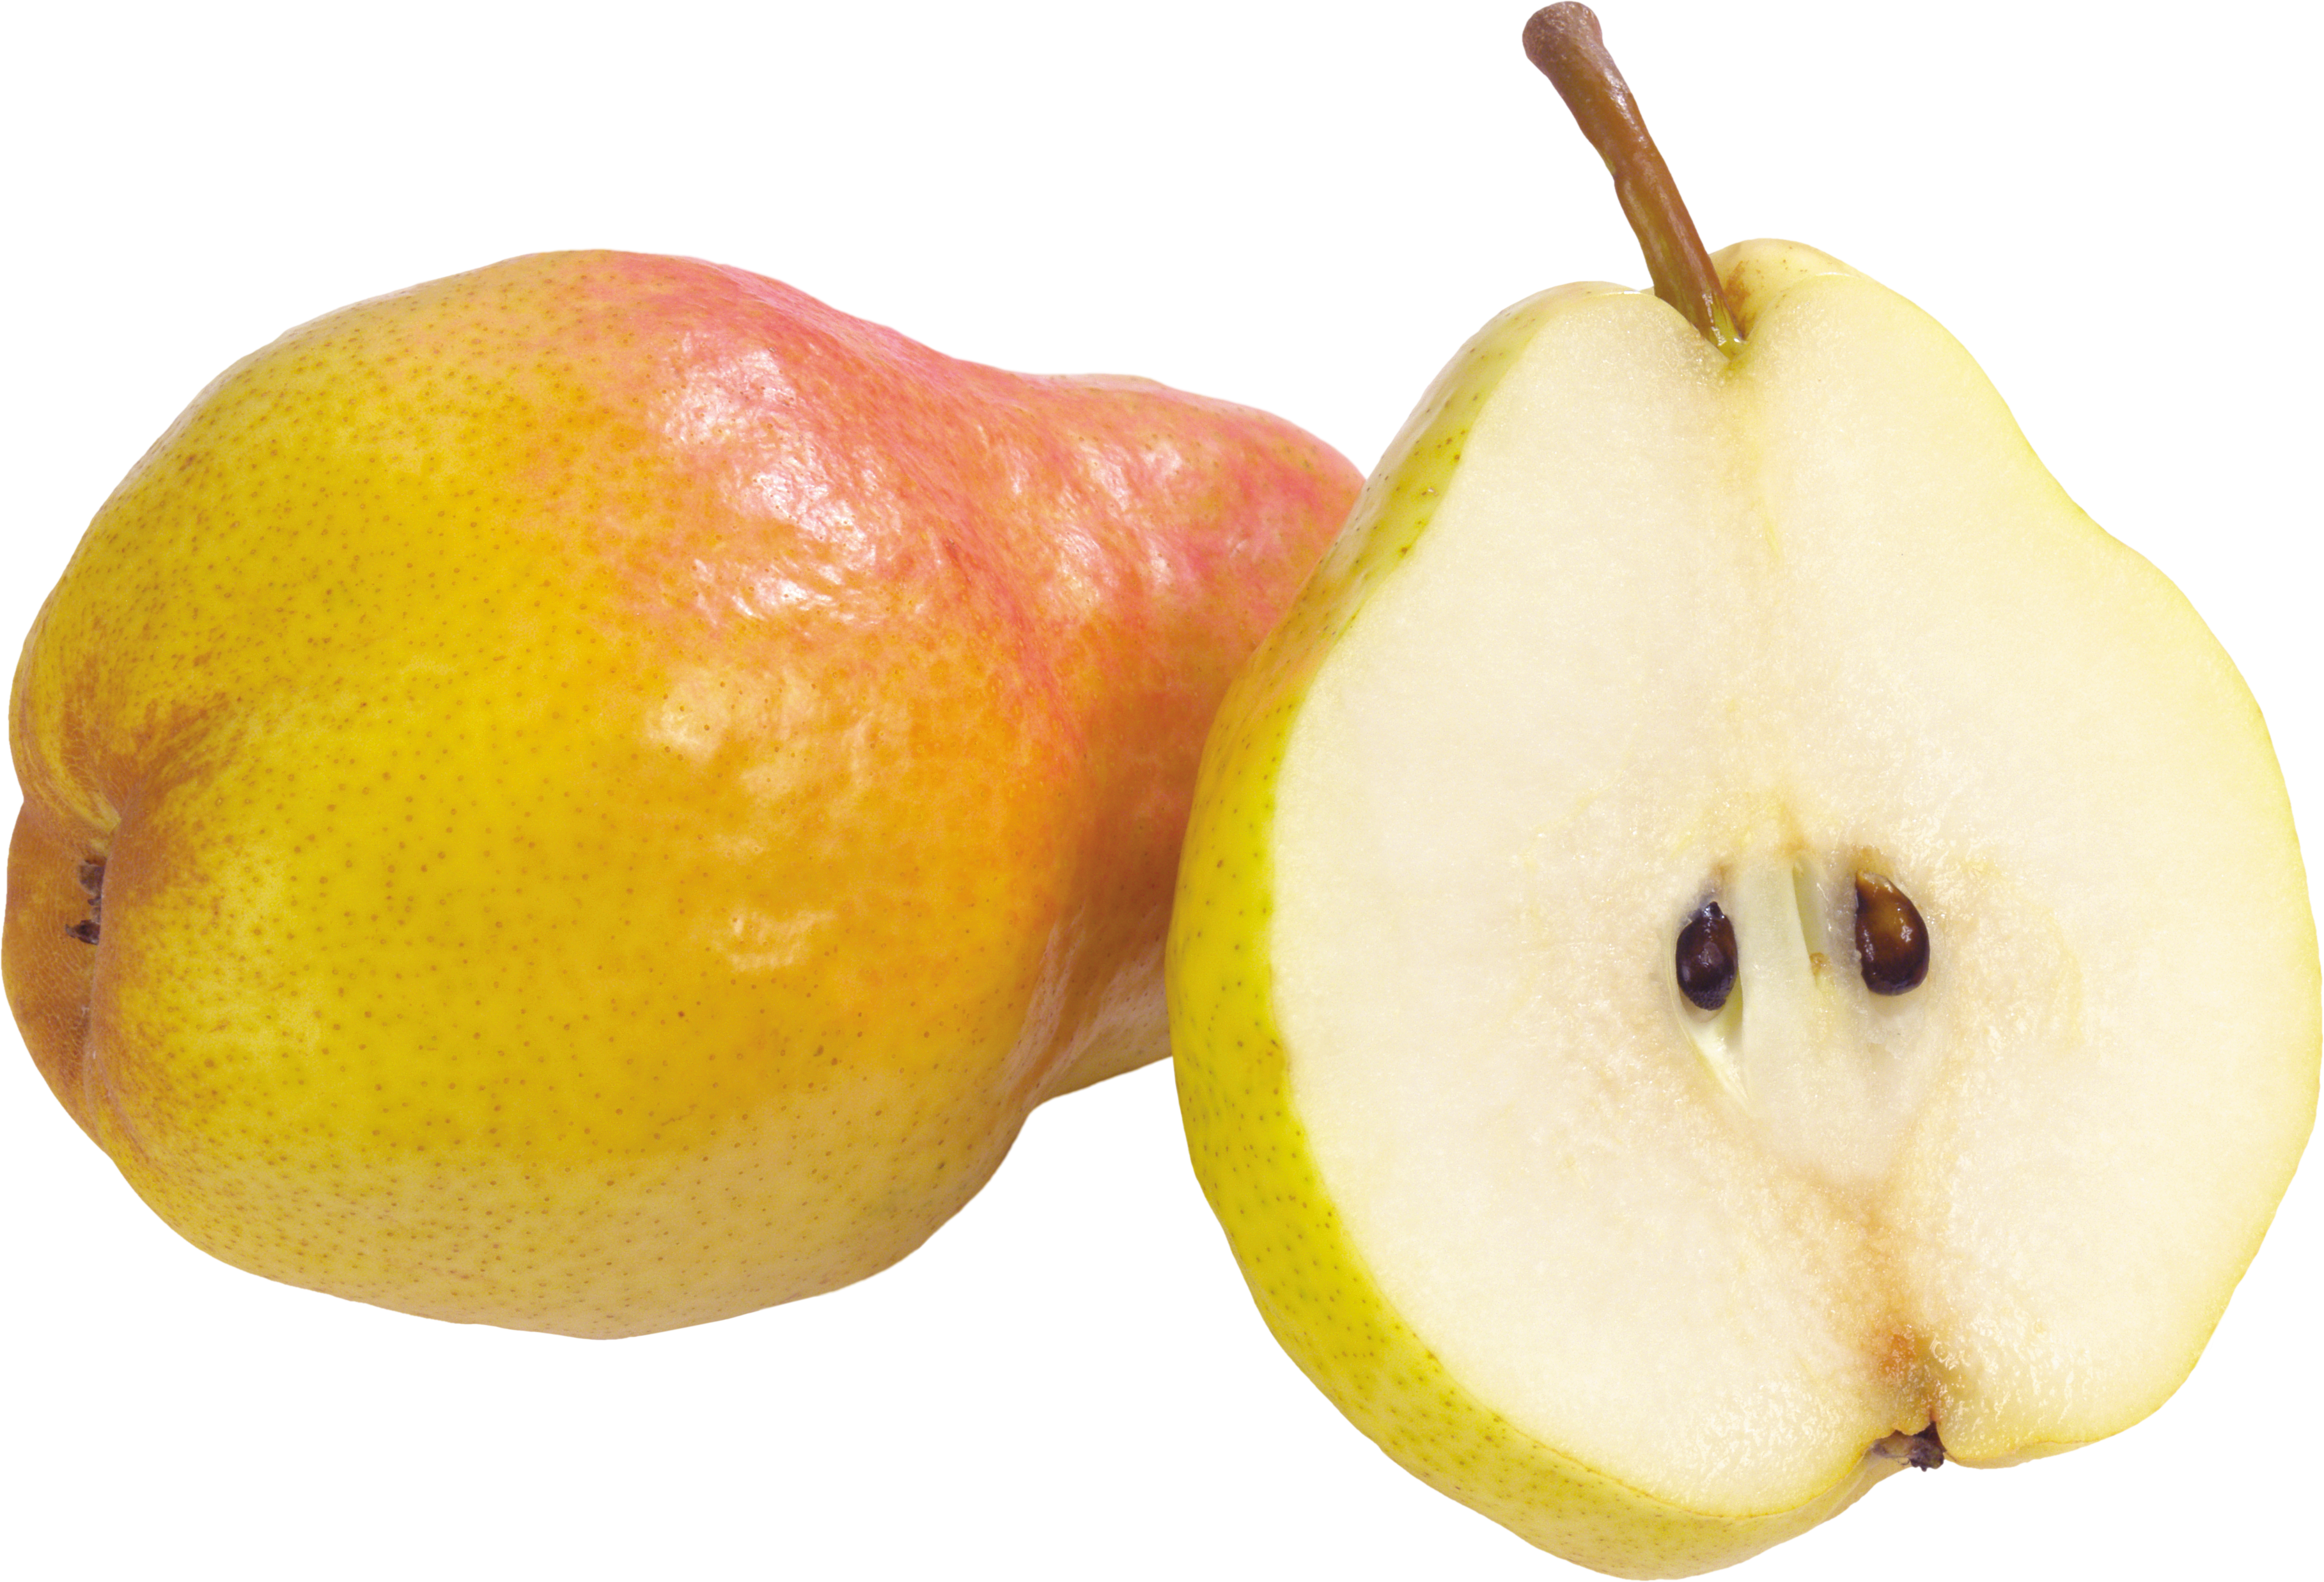 Image gallery expansion png. Pear clipart nashpati